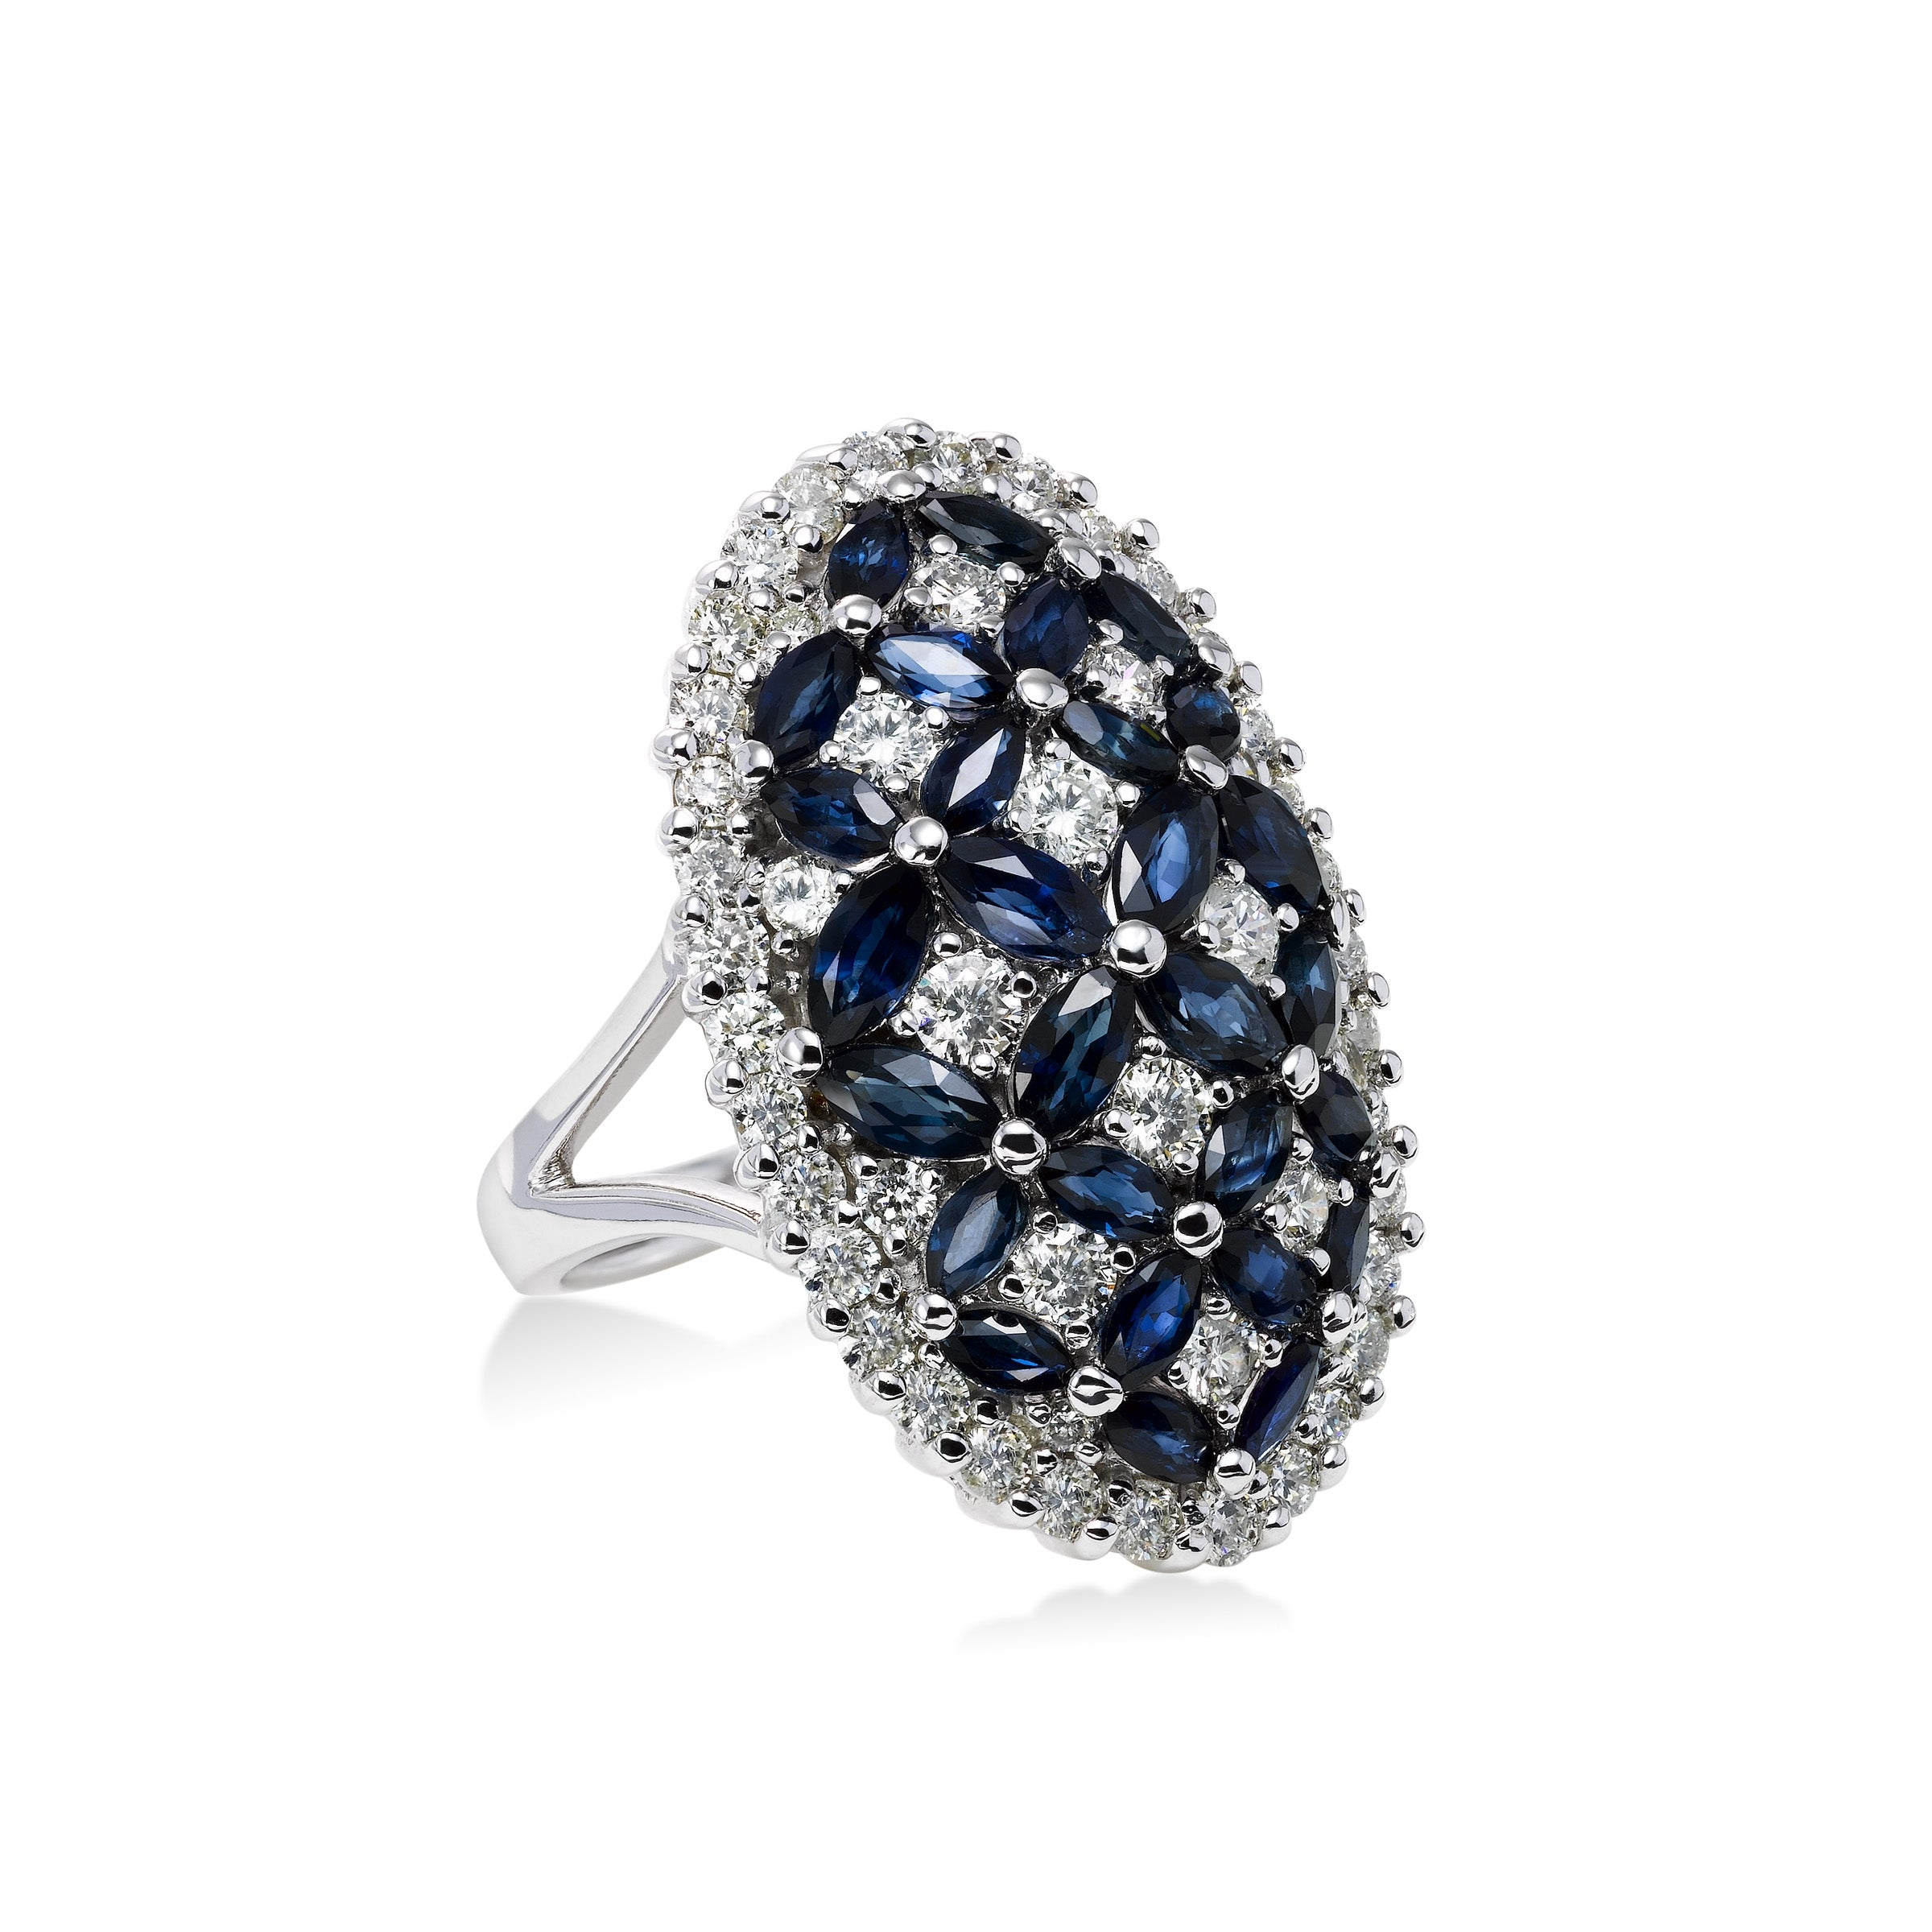 Large Oval Sapphire and Diamond Ring, 14K White Gold